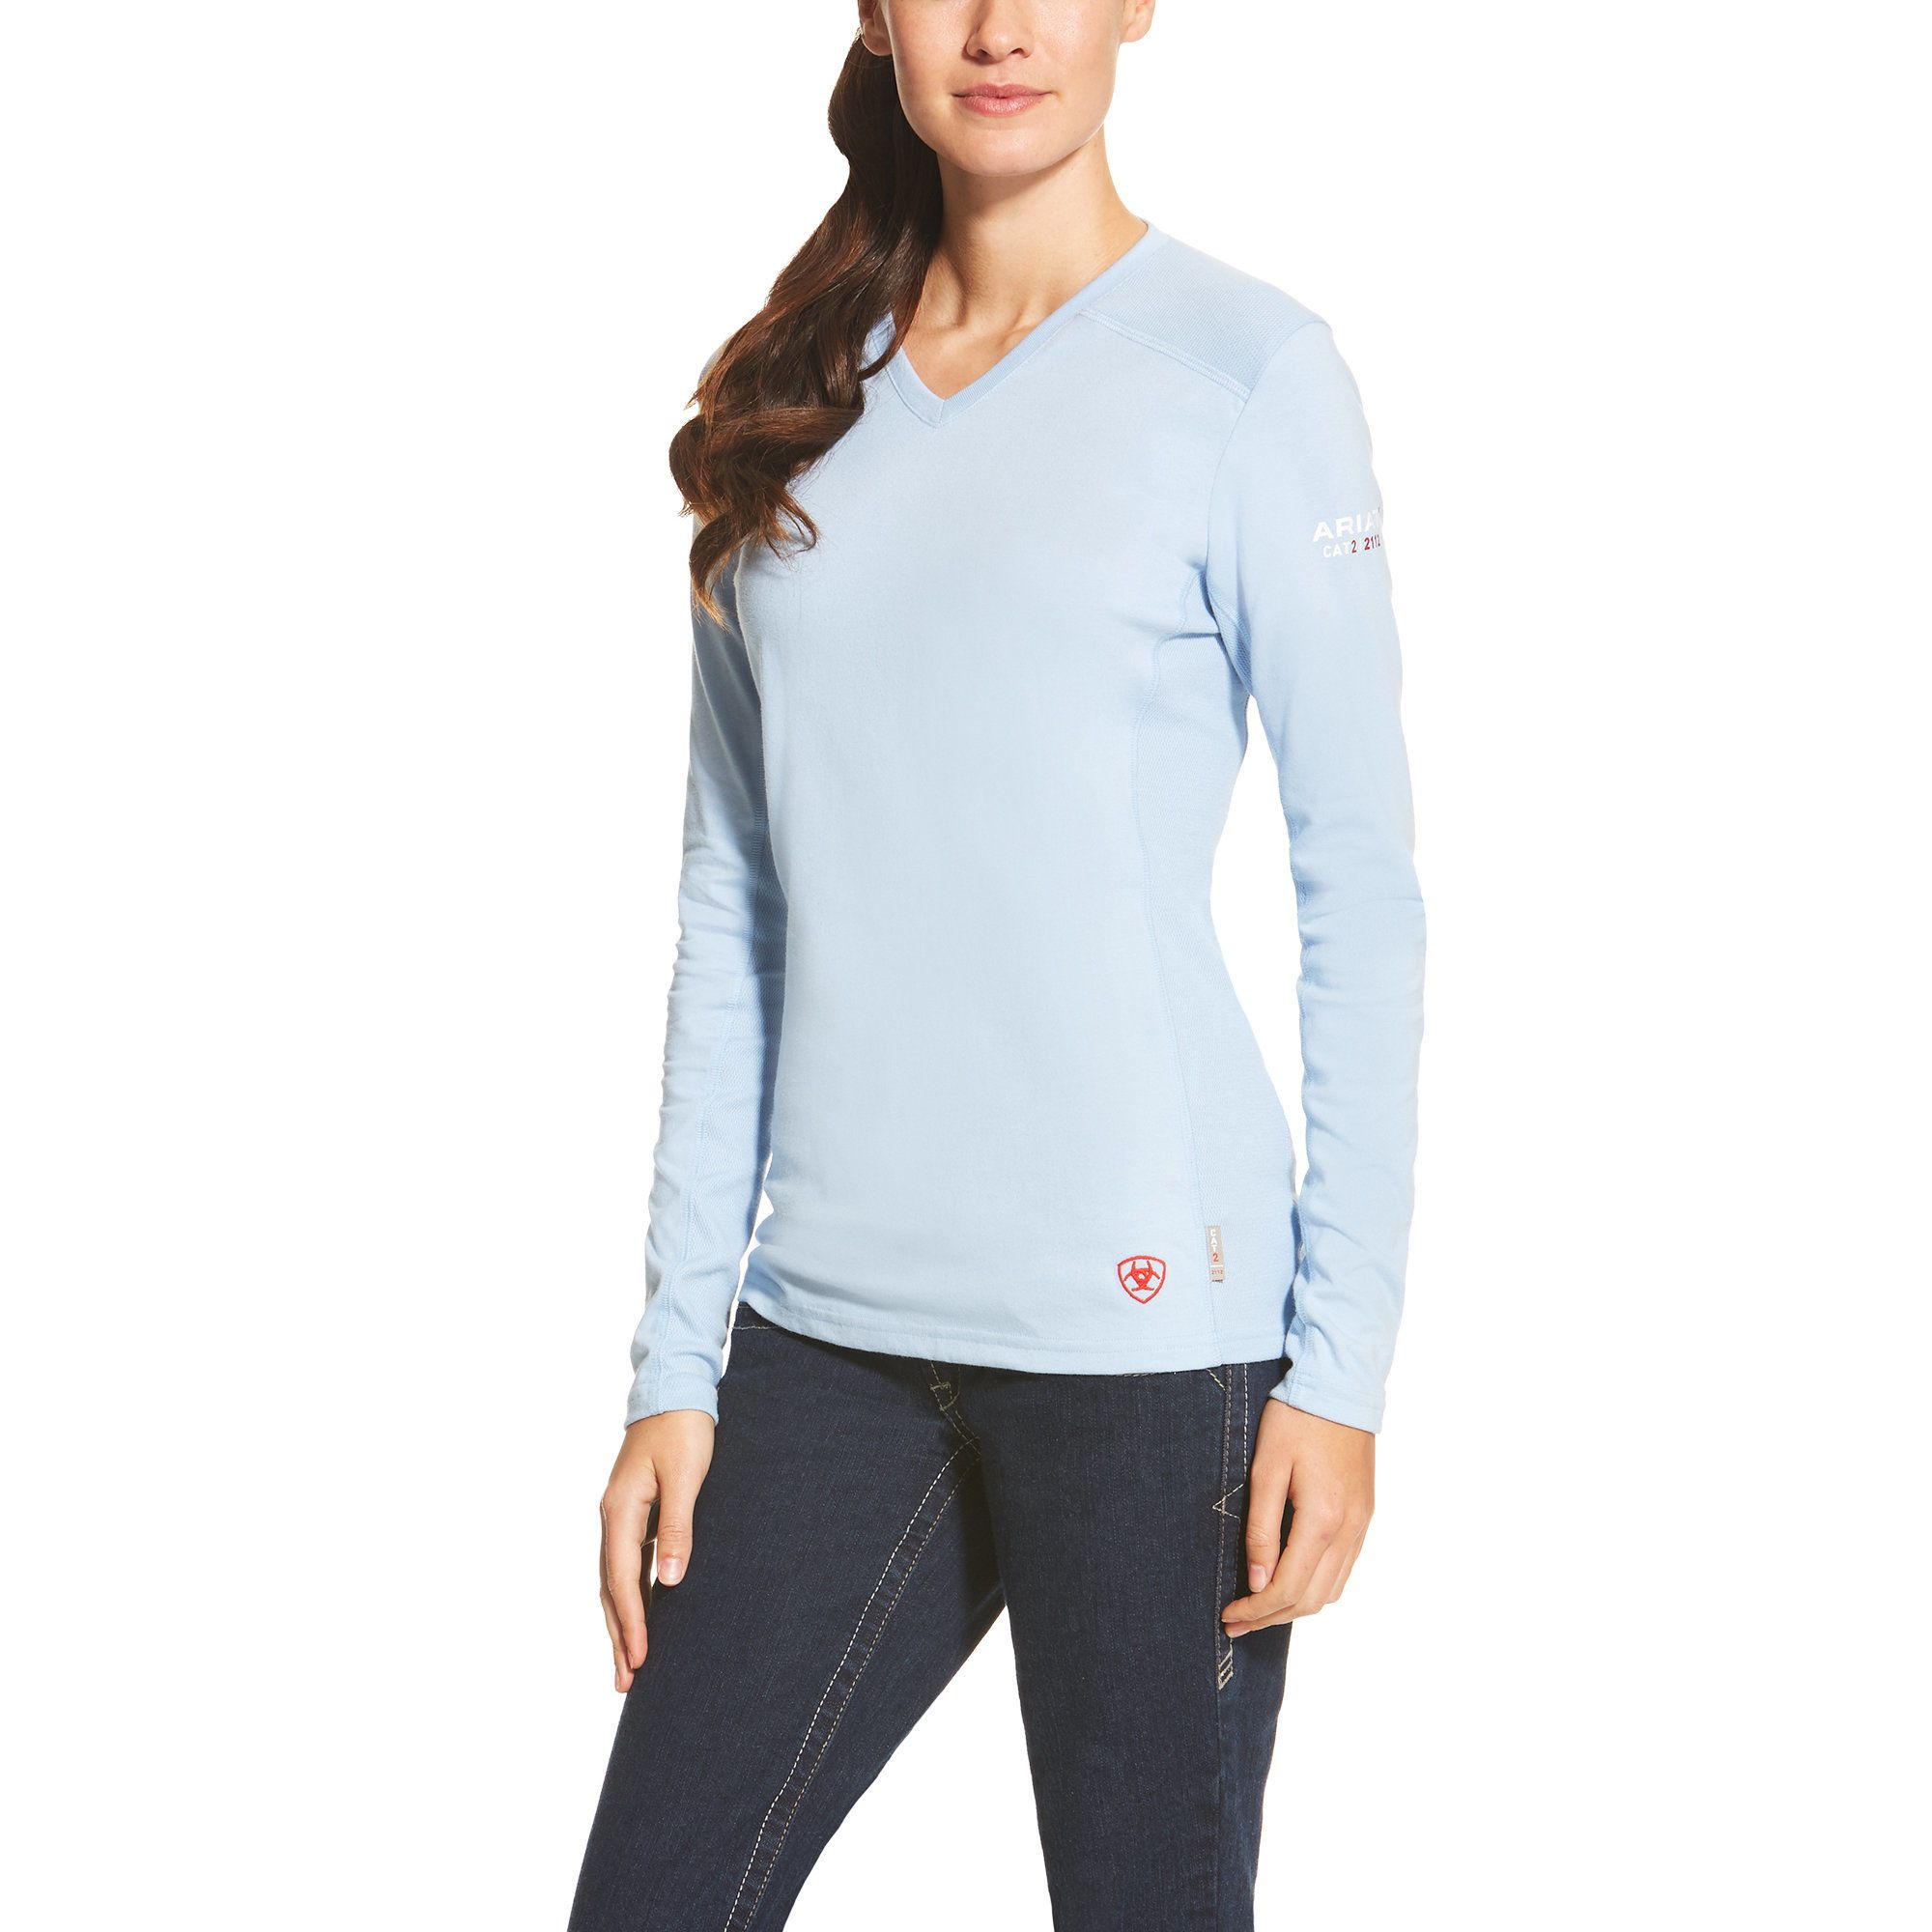 Ariat® is proud to offer a line of flame-resistant workwear designed specifically for women. Our FR knit shirts are constructed with the ultimate comfort, technology and durability in mind. FR fabric is soft against the skin and the taped inside back seam eliminates irritation. CAT 2 ATPV 8.9 cal/cm2 NFPA 70E NFPA 2112 6.75 oz FR jersey Greater Arm Mobility seam construction for maximum range of motion Moisture Movement Technology™ wicks moisture away from the skin VentTEK™ technology features b